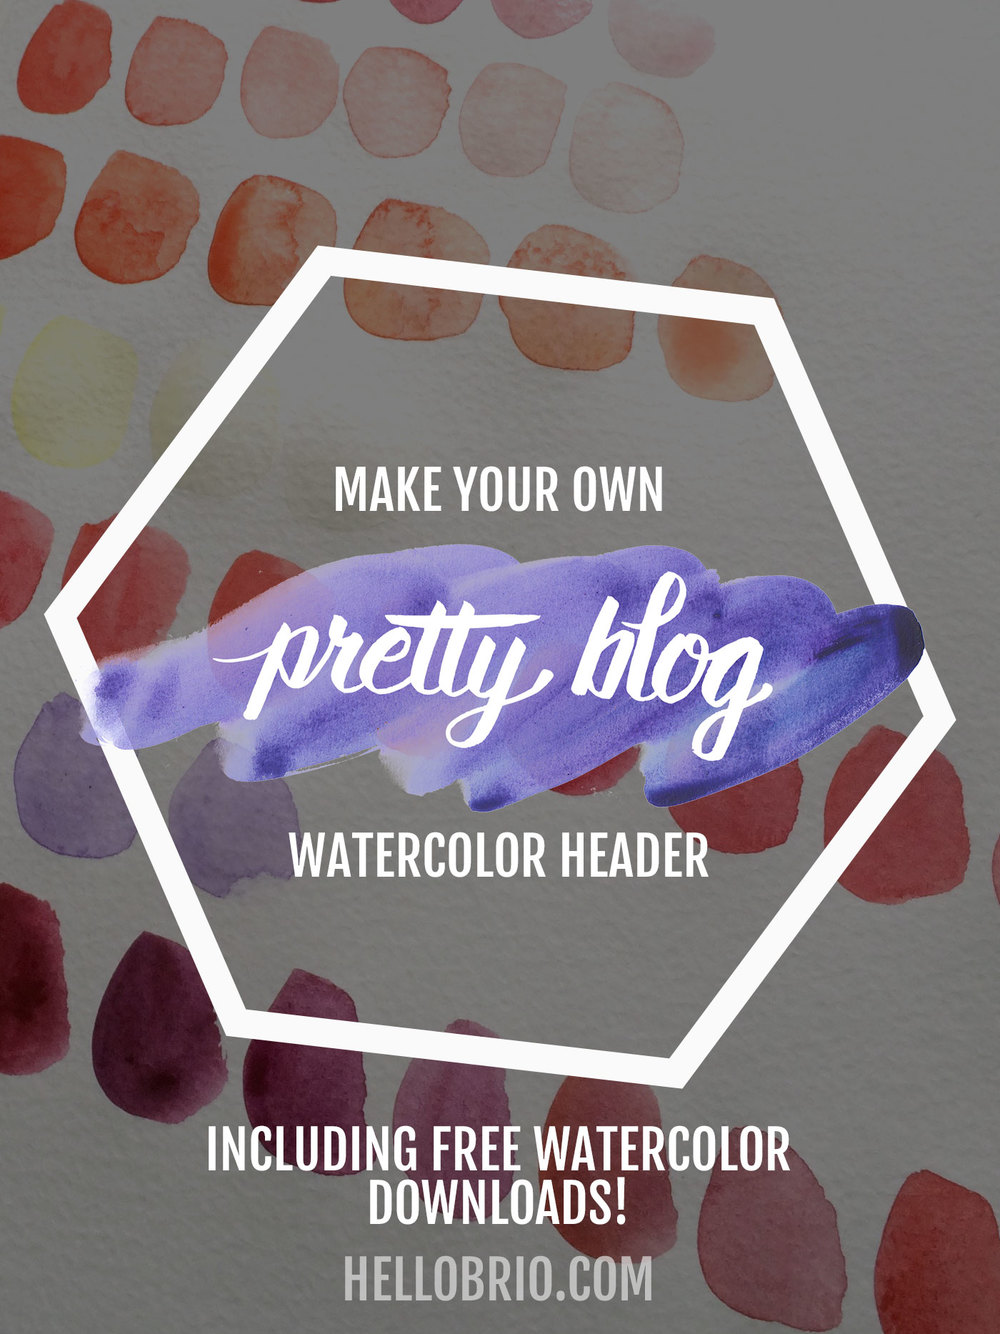 Make your own pretty blog watercolor header